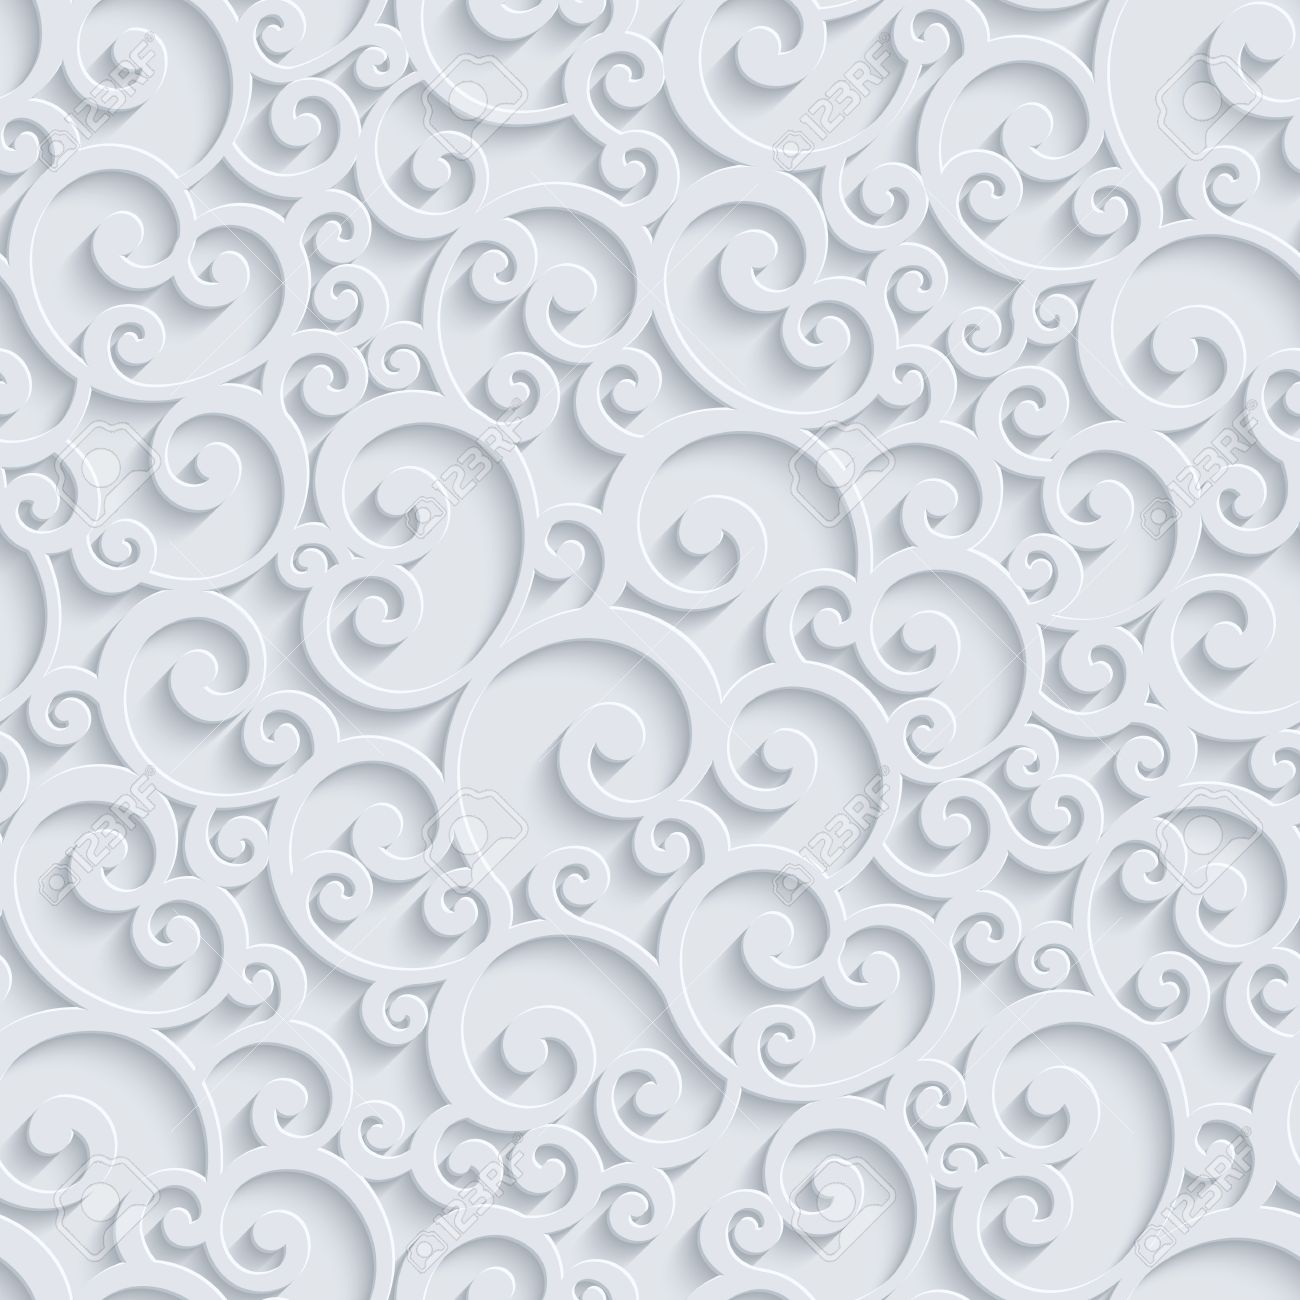 Floral 3d seamless pattern background vector curl decoration floral 3d seamless pattern background vector curl decoration for wallpaper or invitation card swirl stopboris Images